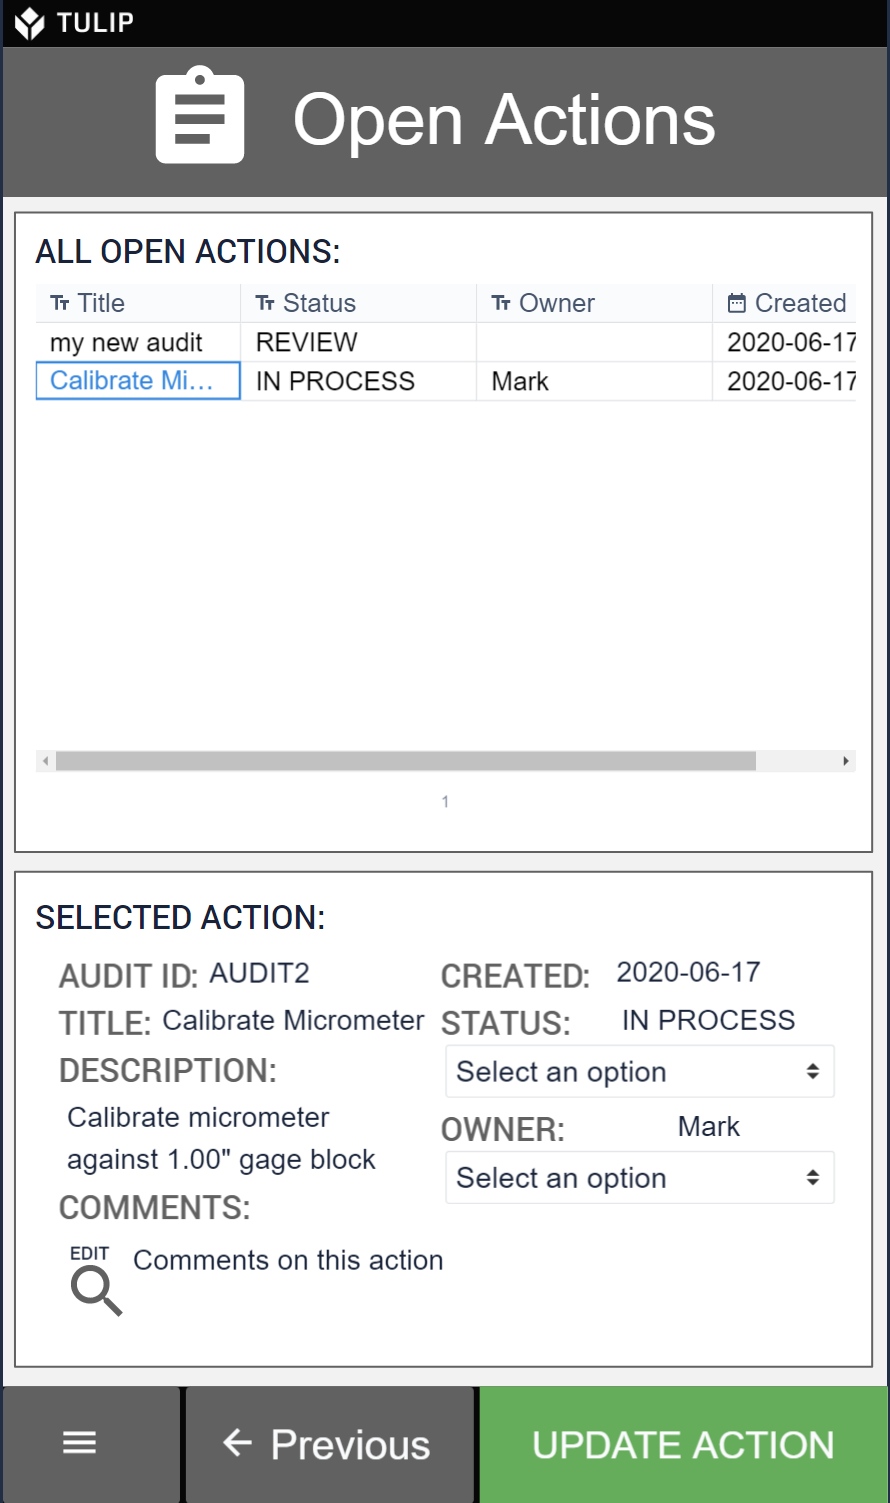 Picture of a process audit checklist application showing how open actions are tied to audit results